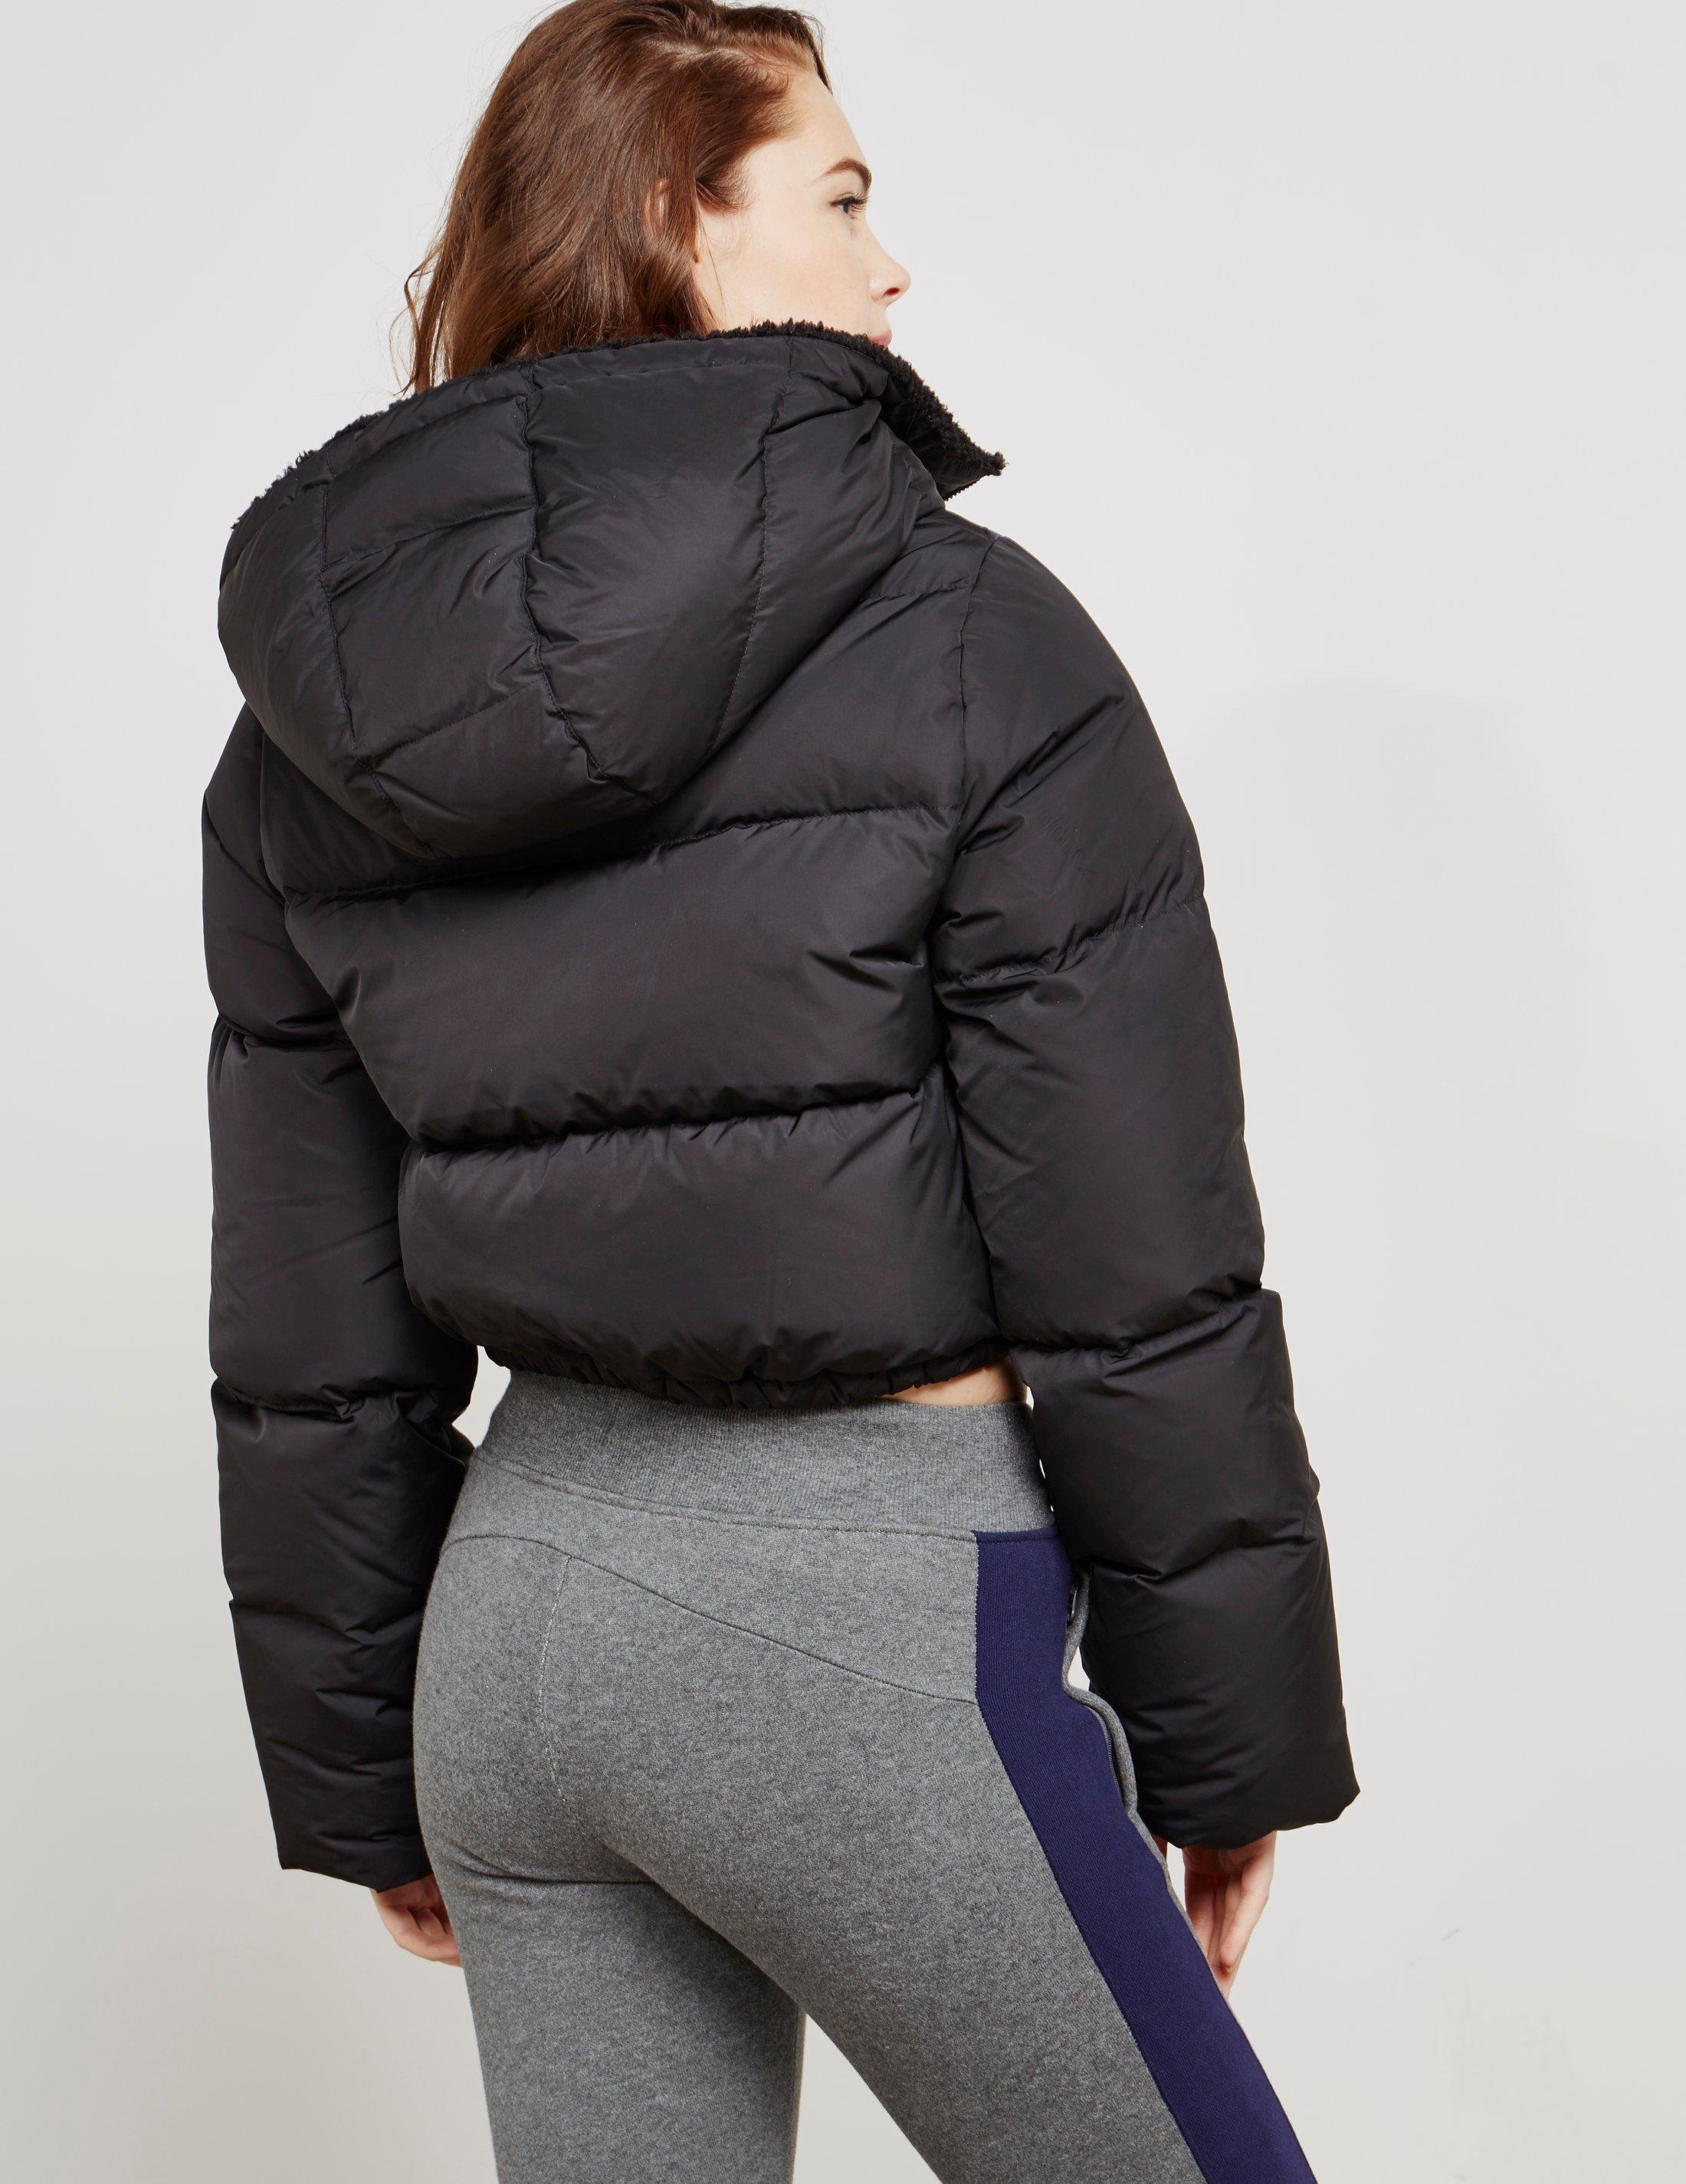 829baad1bf3b Lyst - PUMA Womens Fenty Quilted Bomber Jacket - Online Exclusive ...